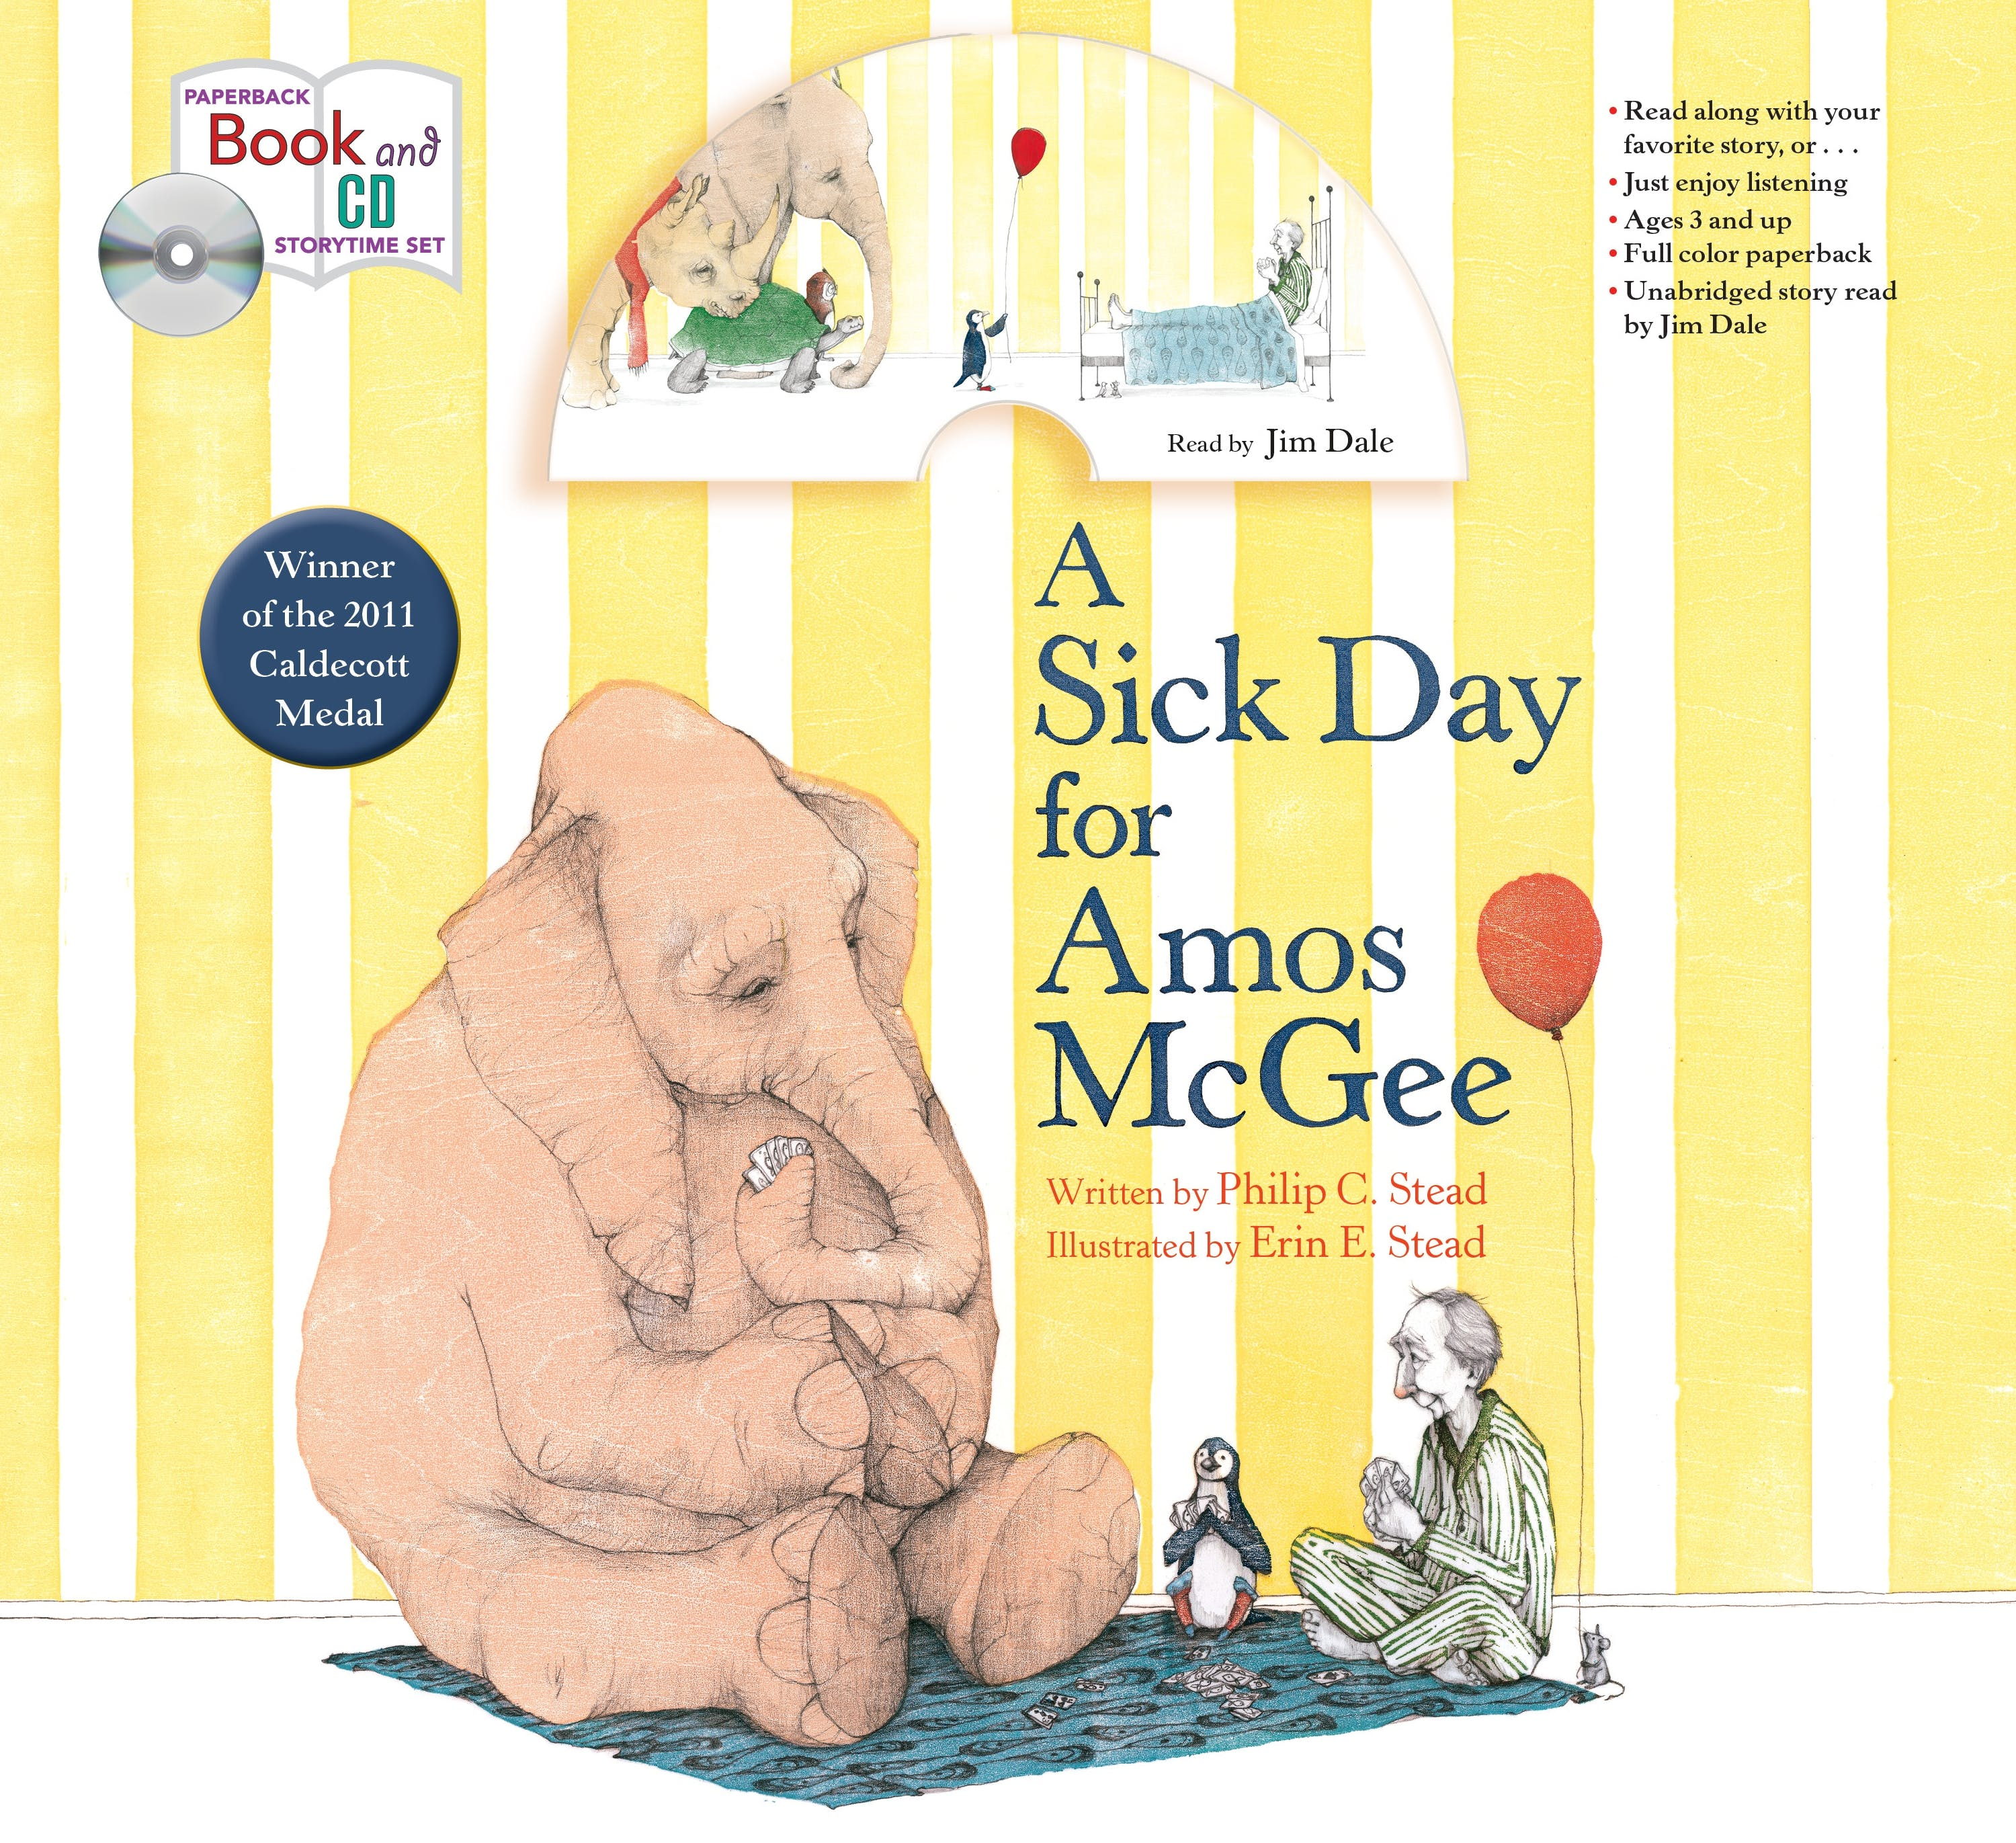 Image of A Sick Day for Amos McGee: Book & CD Storytime Set